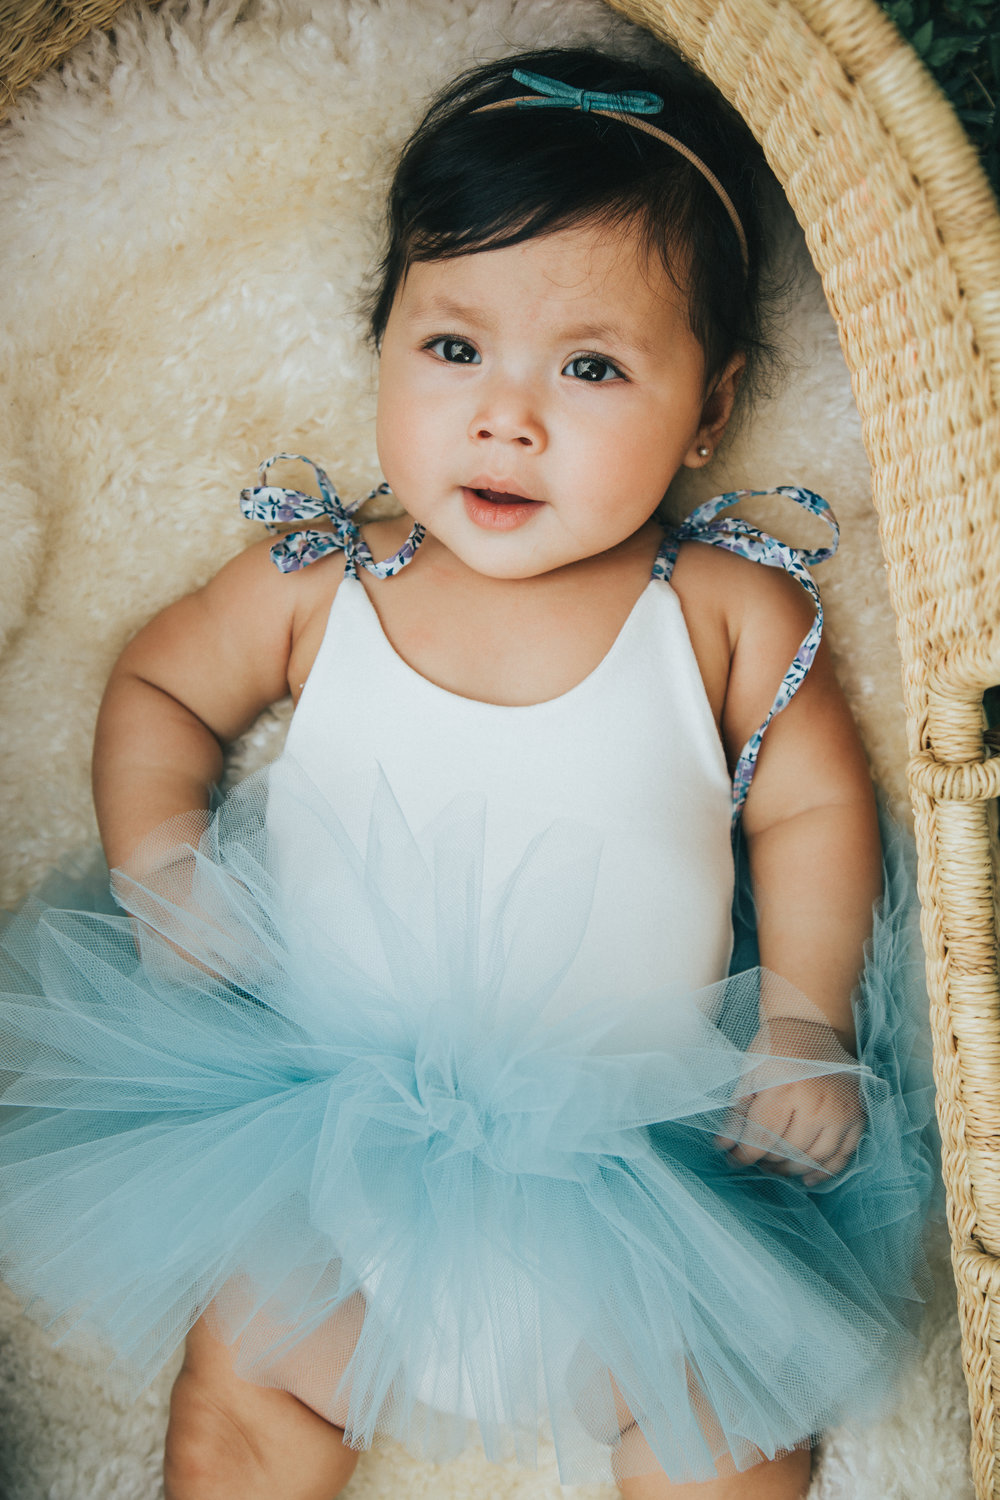 So happy Gigi finally fits into her tutu dress by  WrareDoll . A gift from our mama friend, Joy Green.